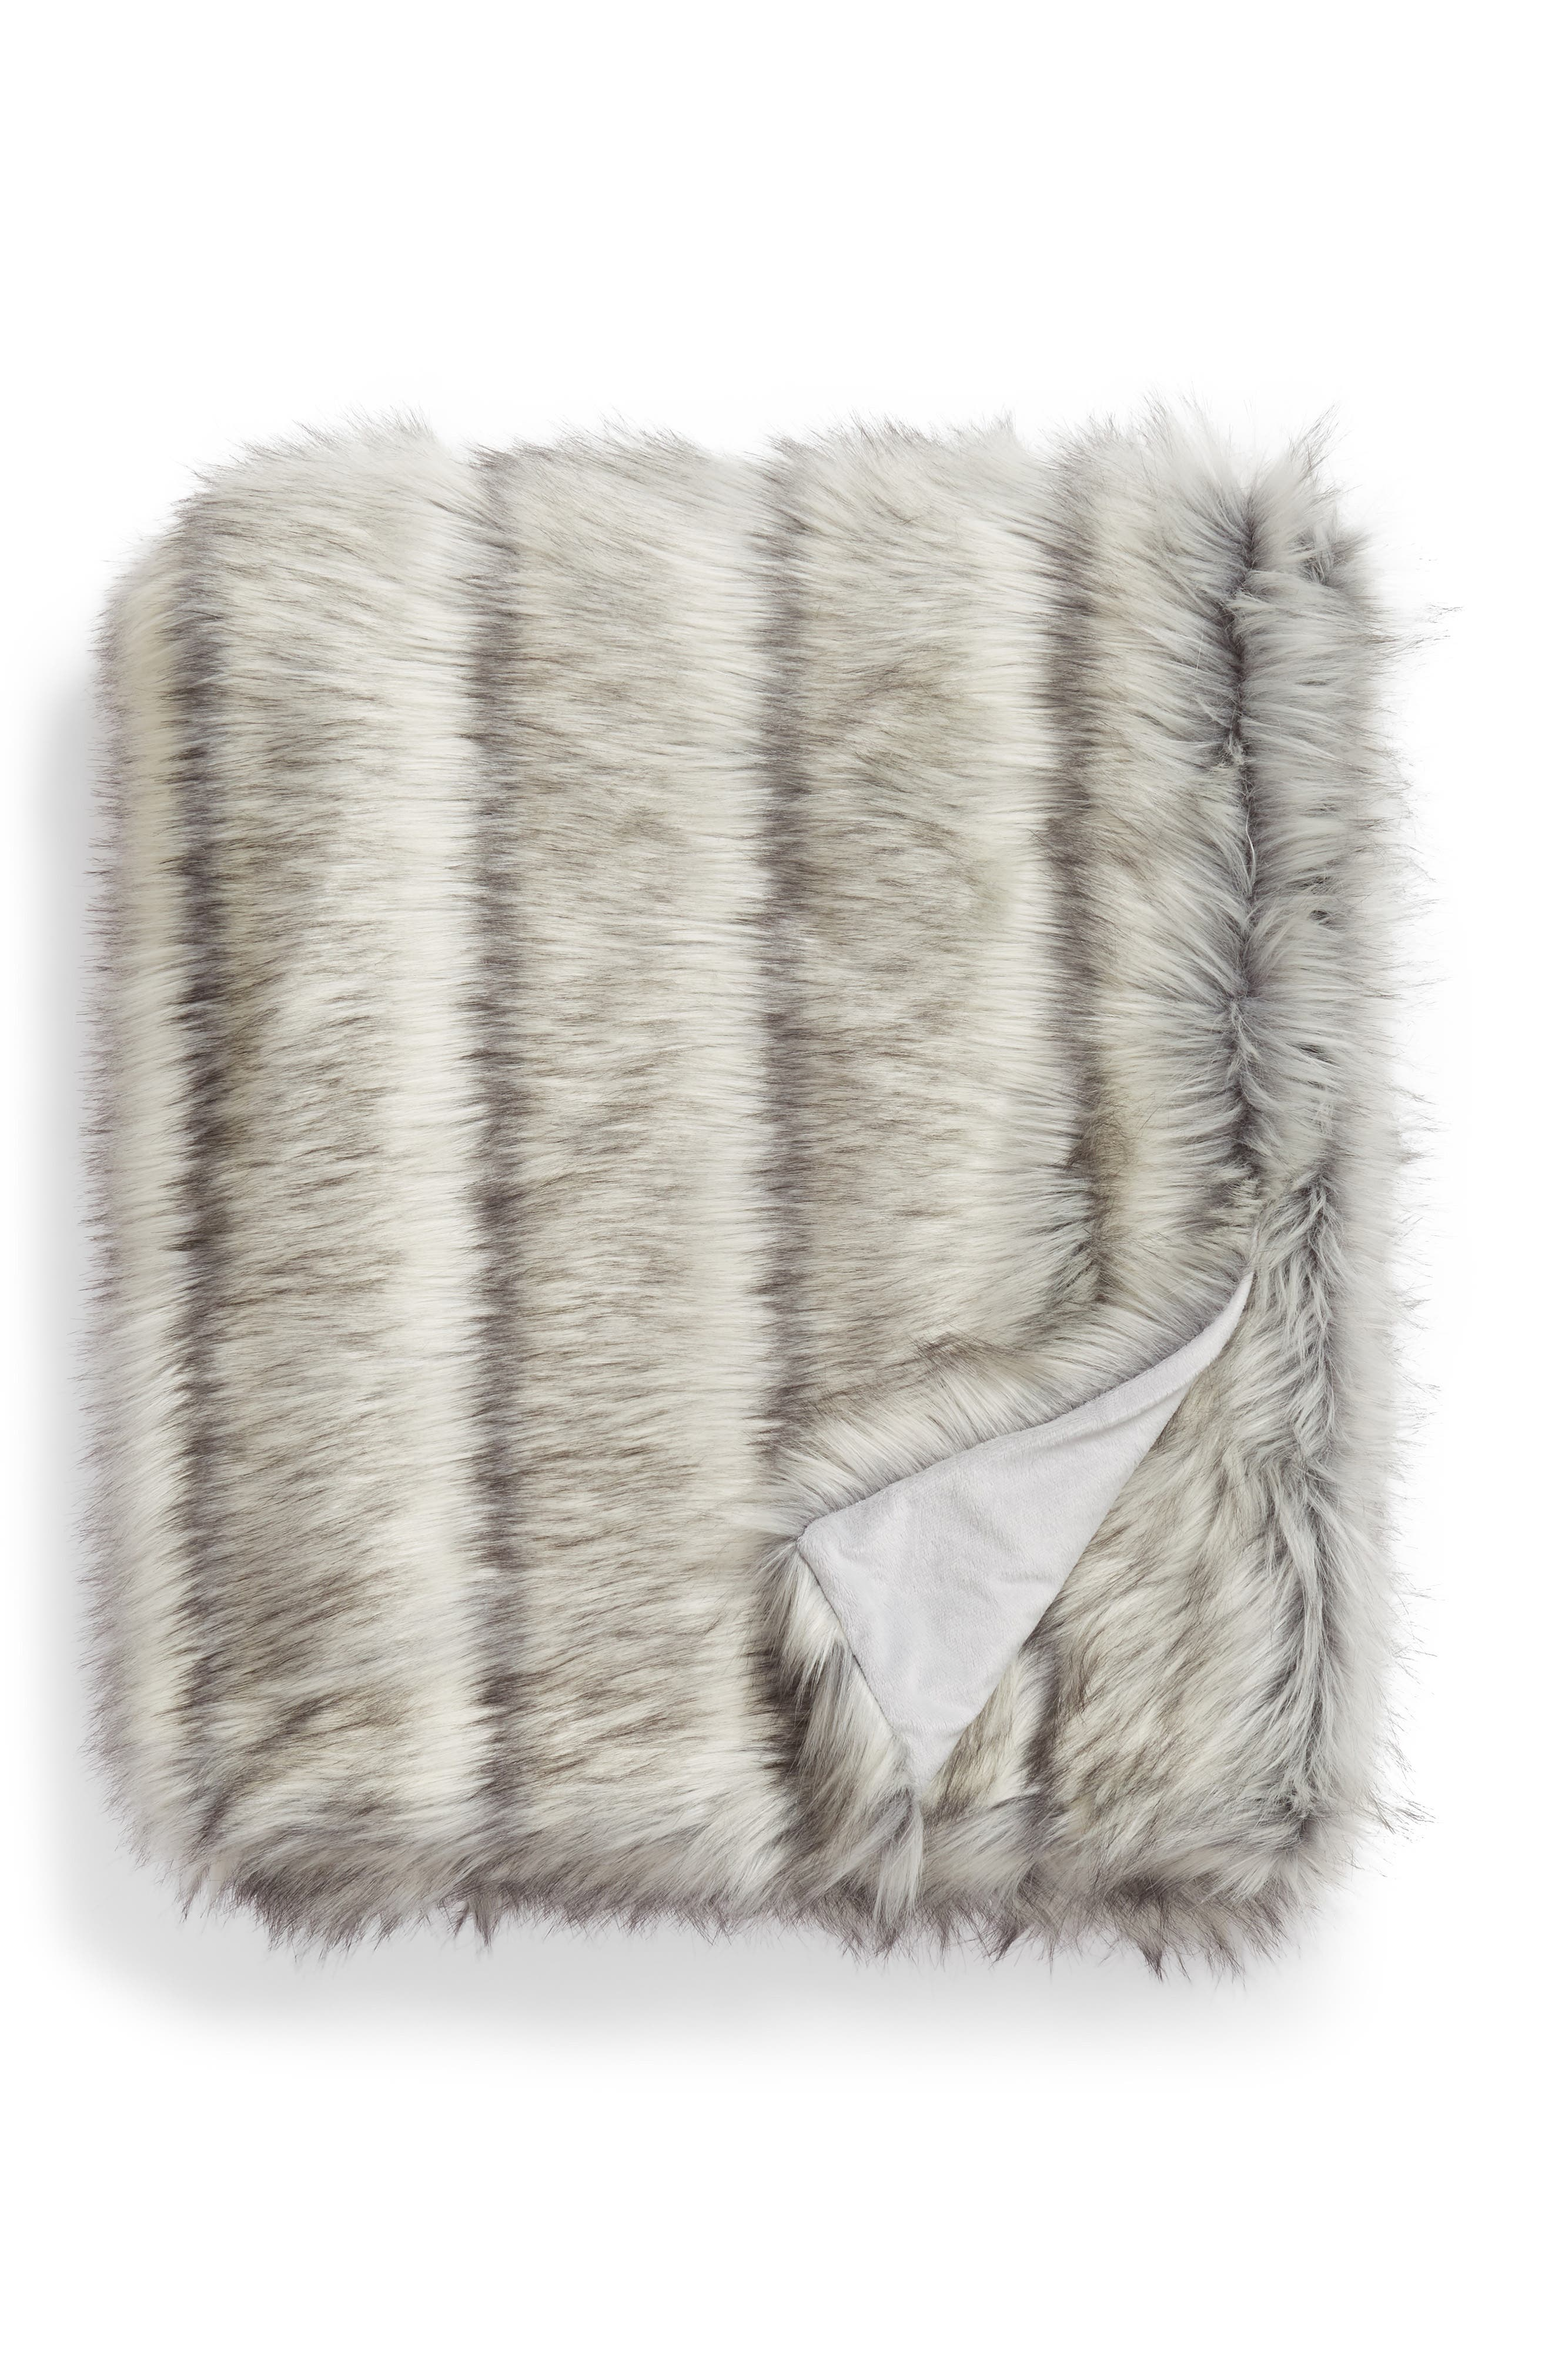 Luxe Faux Fur Stripe Throw Blanket,                             Main thumbnail 1, color,                             GREY FROST MULTI